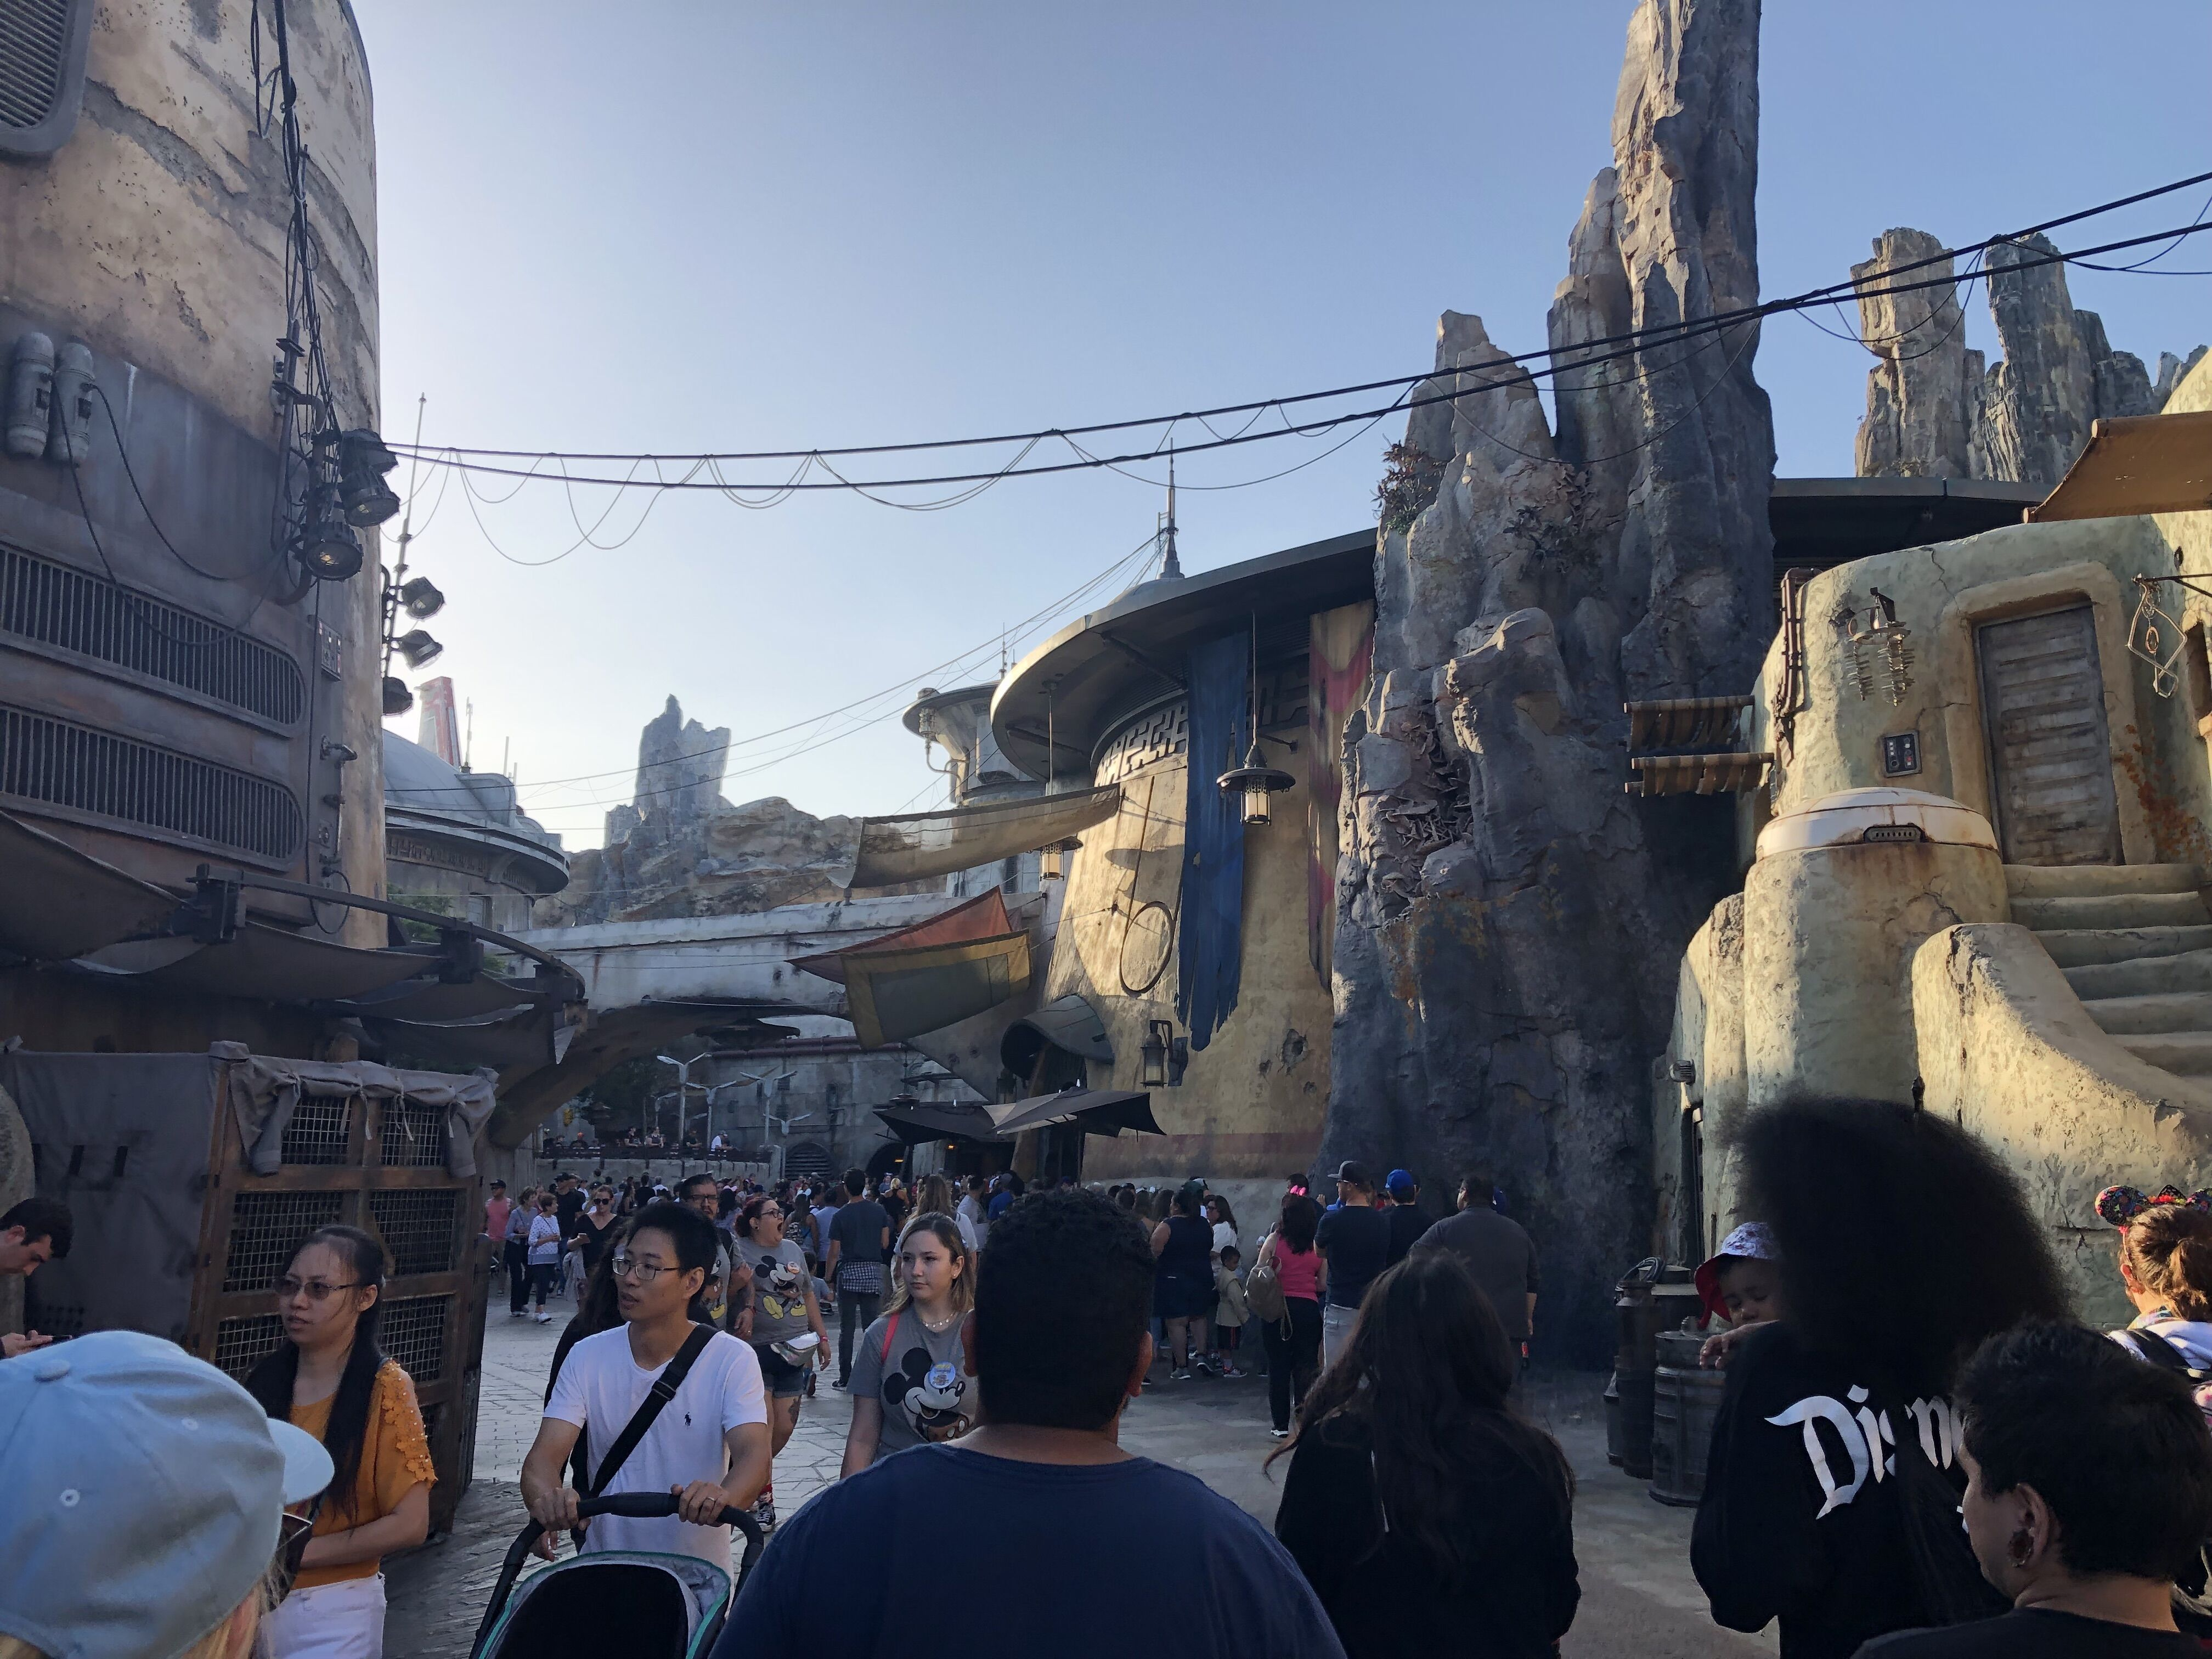 You can still enjoy Galaxy's Edge even if the food doesn't have 'Star Wars' names